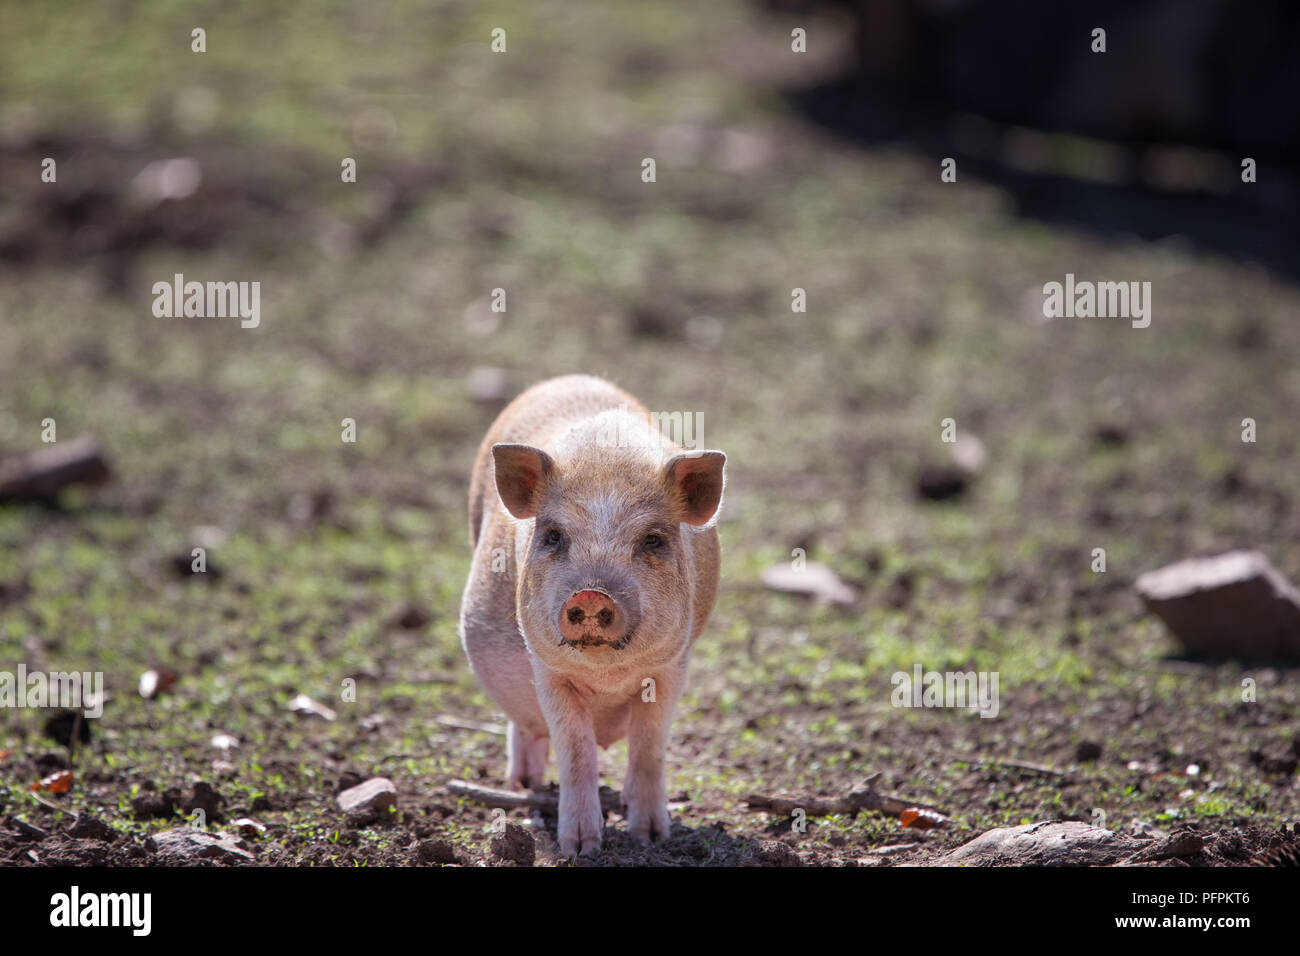 Domestic pig, Sus scrofa domesticus                                                    Frontal image of Piglet - Stock Image